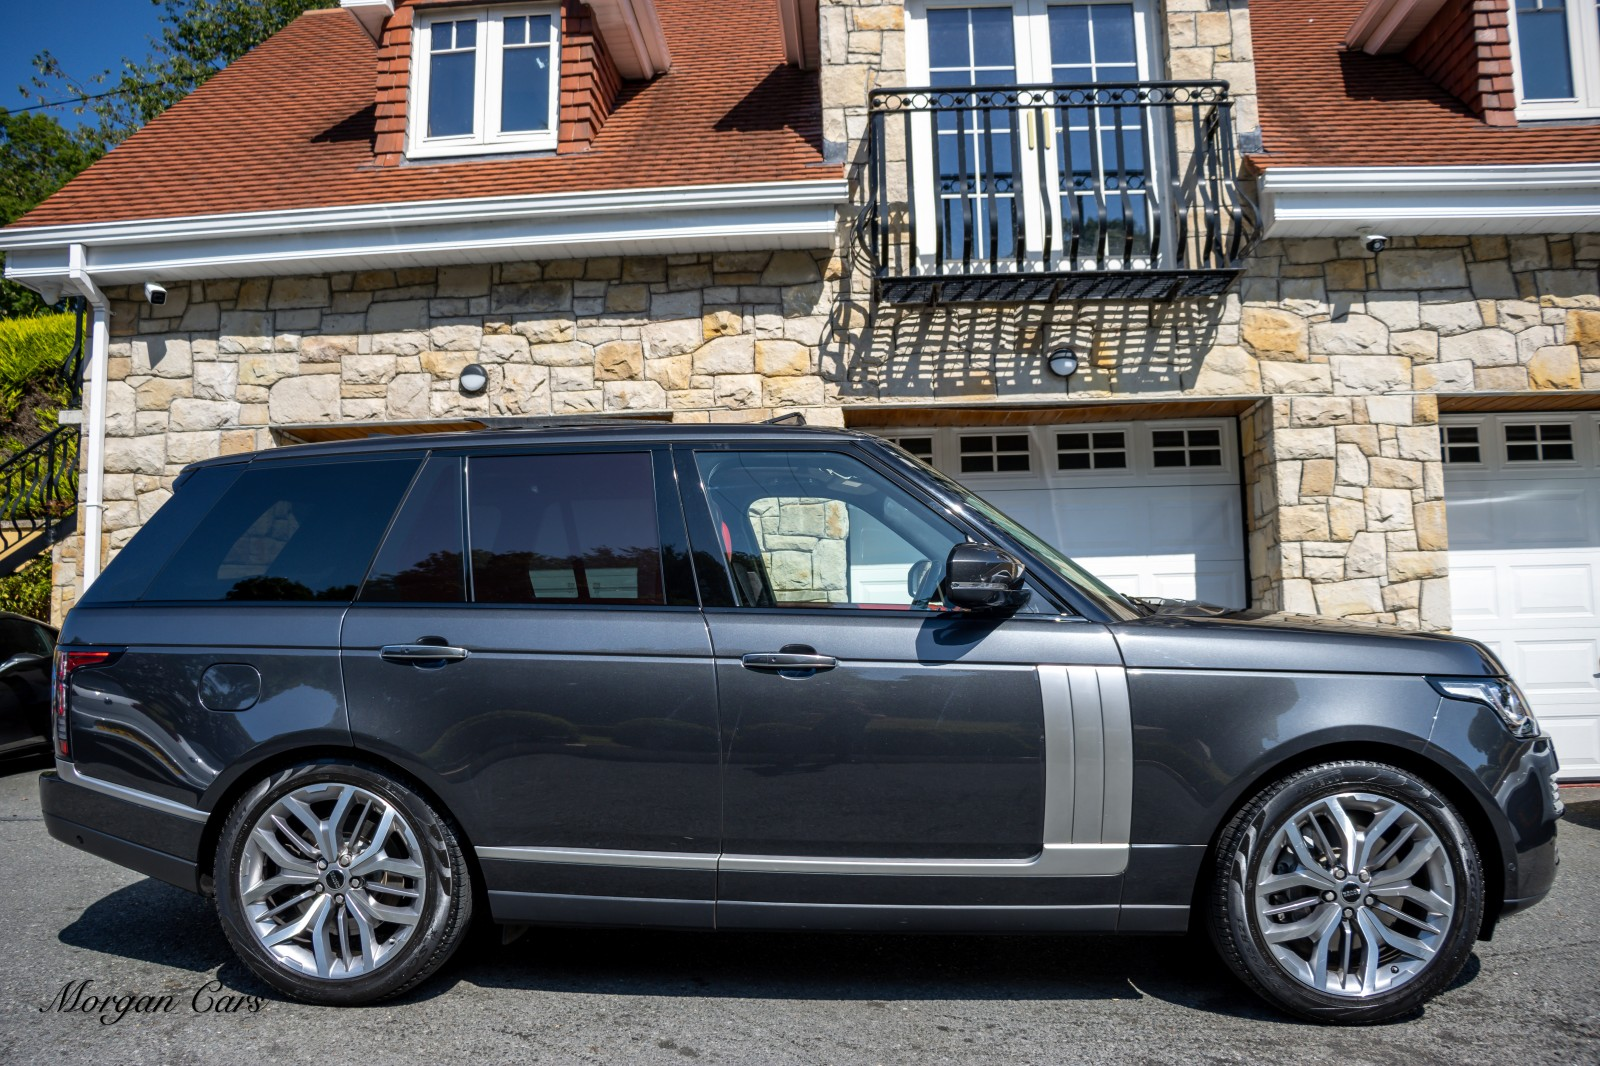 2017 Land Rover Range Rover 4.4 SDV8 AUTOBIOGRAPHY Diesel Automatic – Morgan Cars 9 Mound Road, Warrenpoint, Newry BT34 3LW, UK full